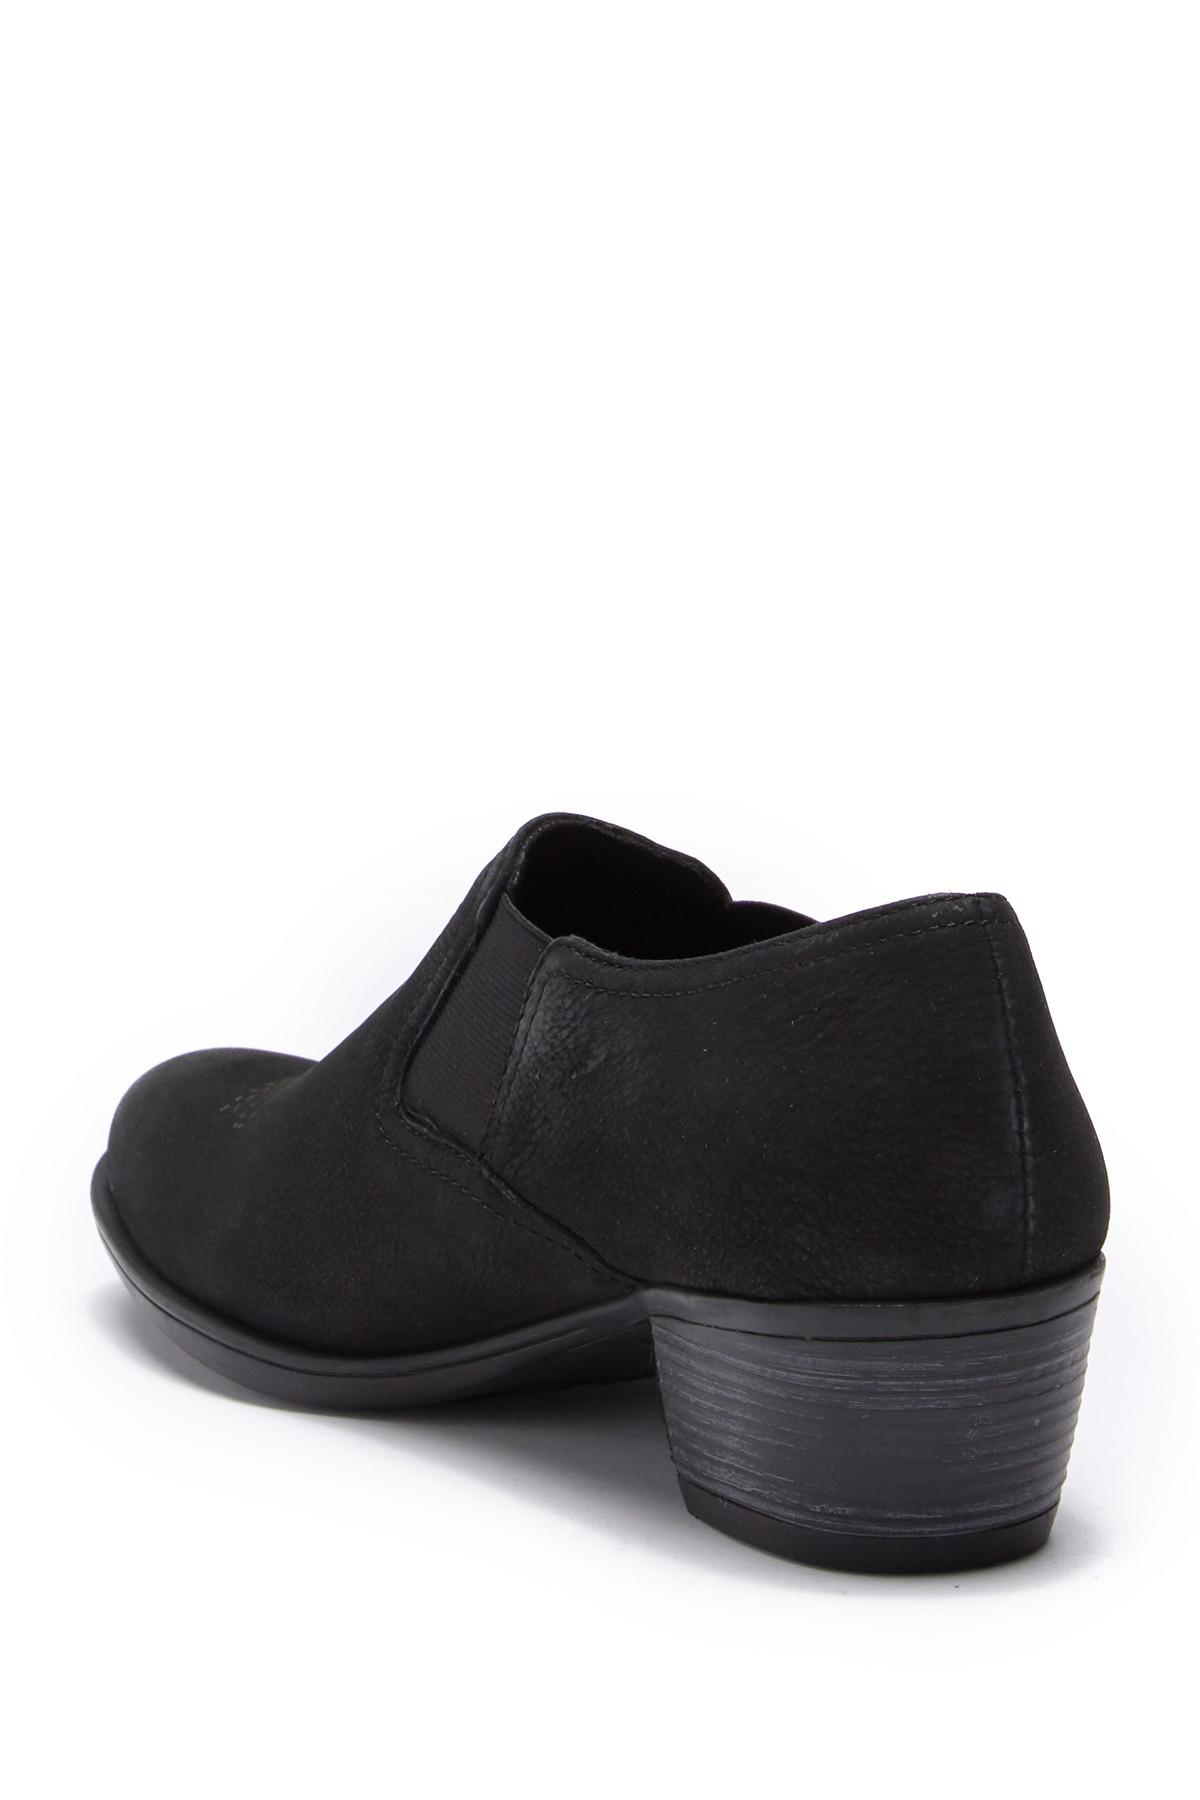 31a20439bf1 Munro - Black Silverton Ankle Bootie - Multiple Widths Available - Lyst.  View fullscreen